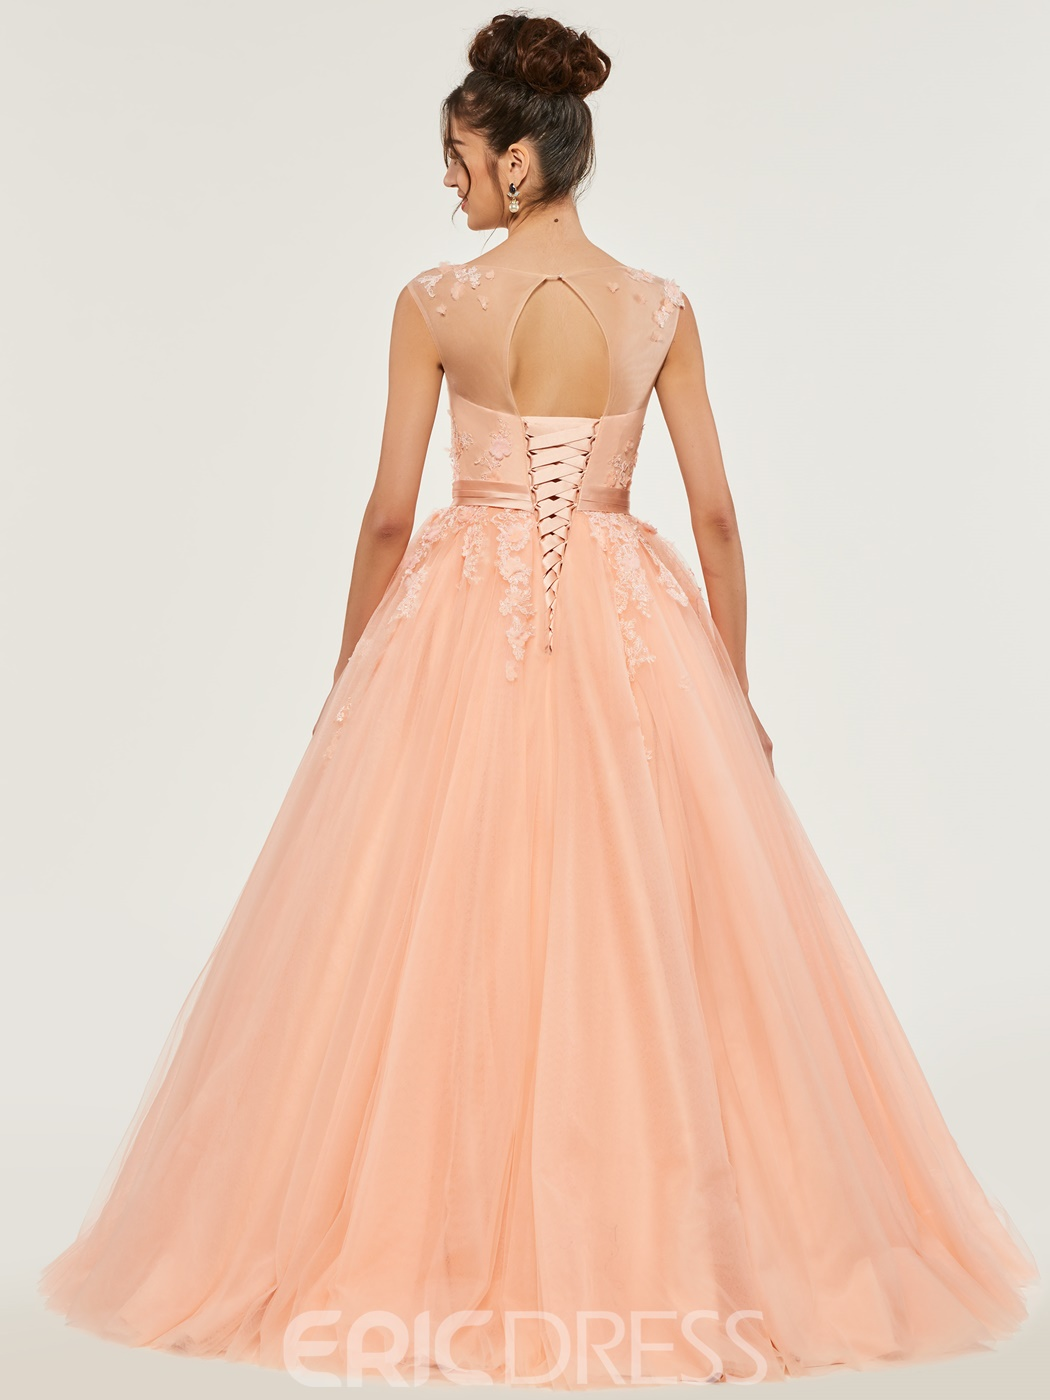 Ericdress Bateau Neck Applique Lace-Up Ball Gown